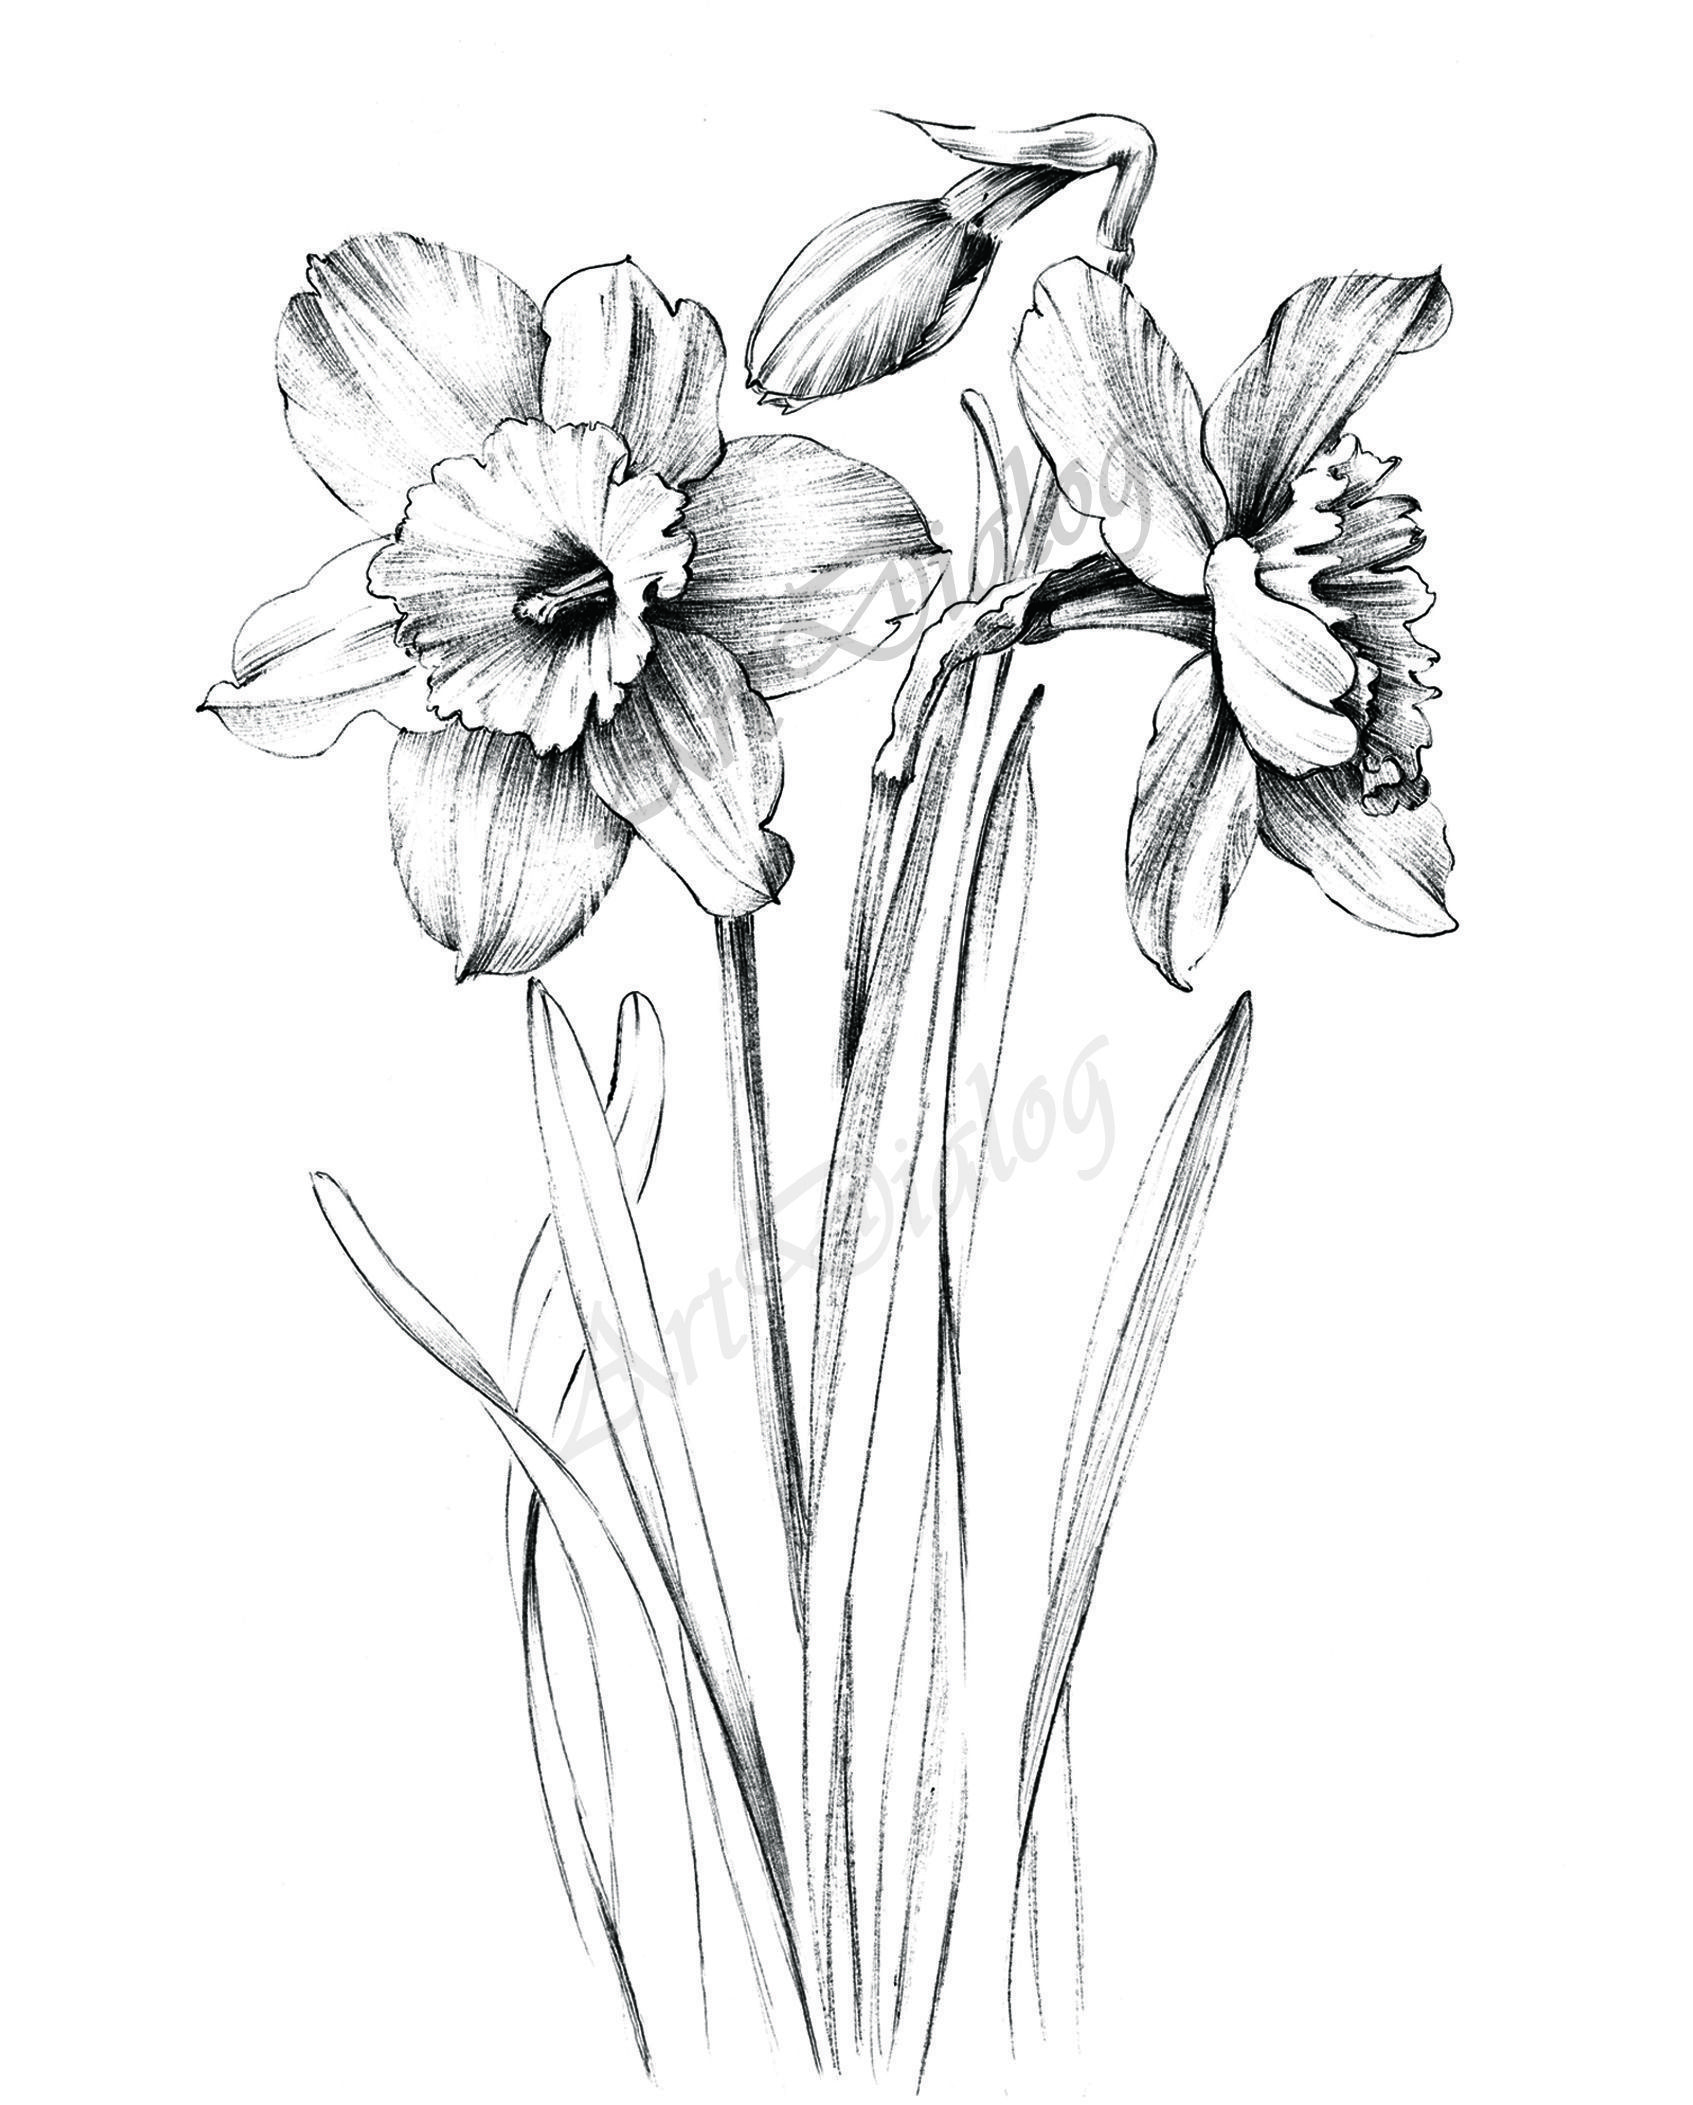 Pin by Tina Muller on Art in 2020 | Flower drawing ...